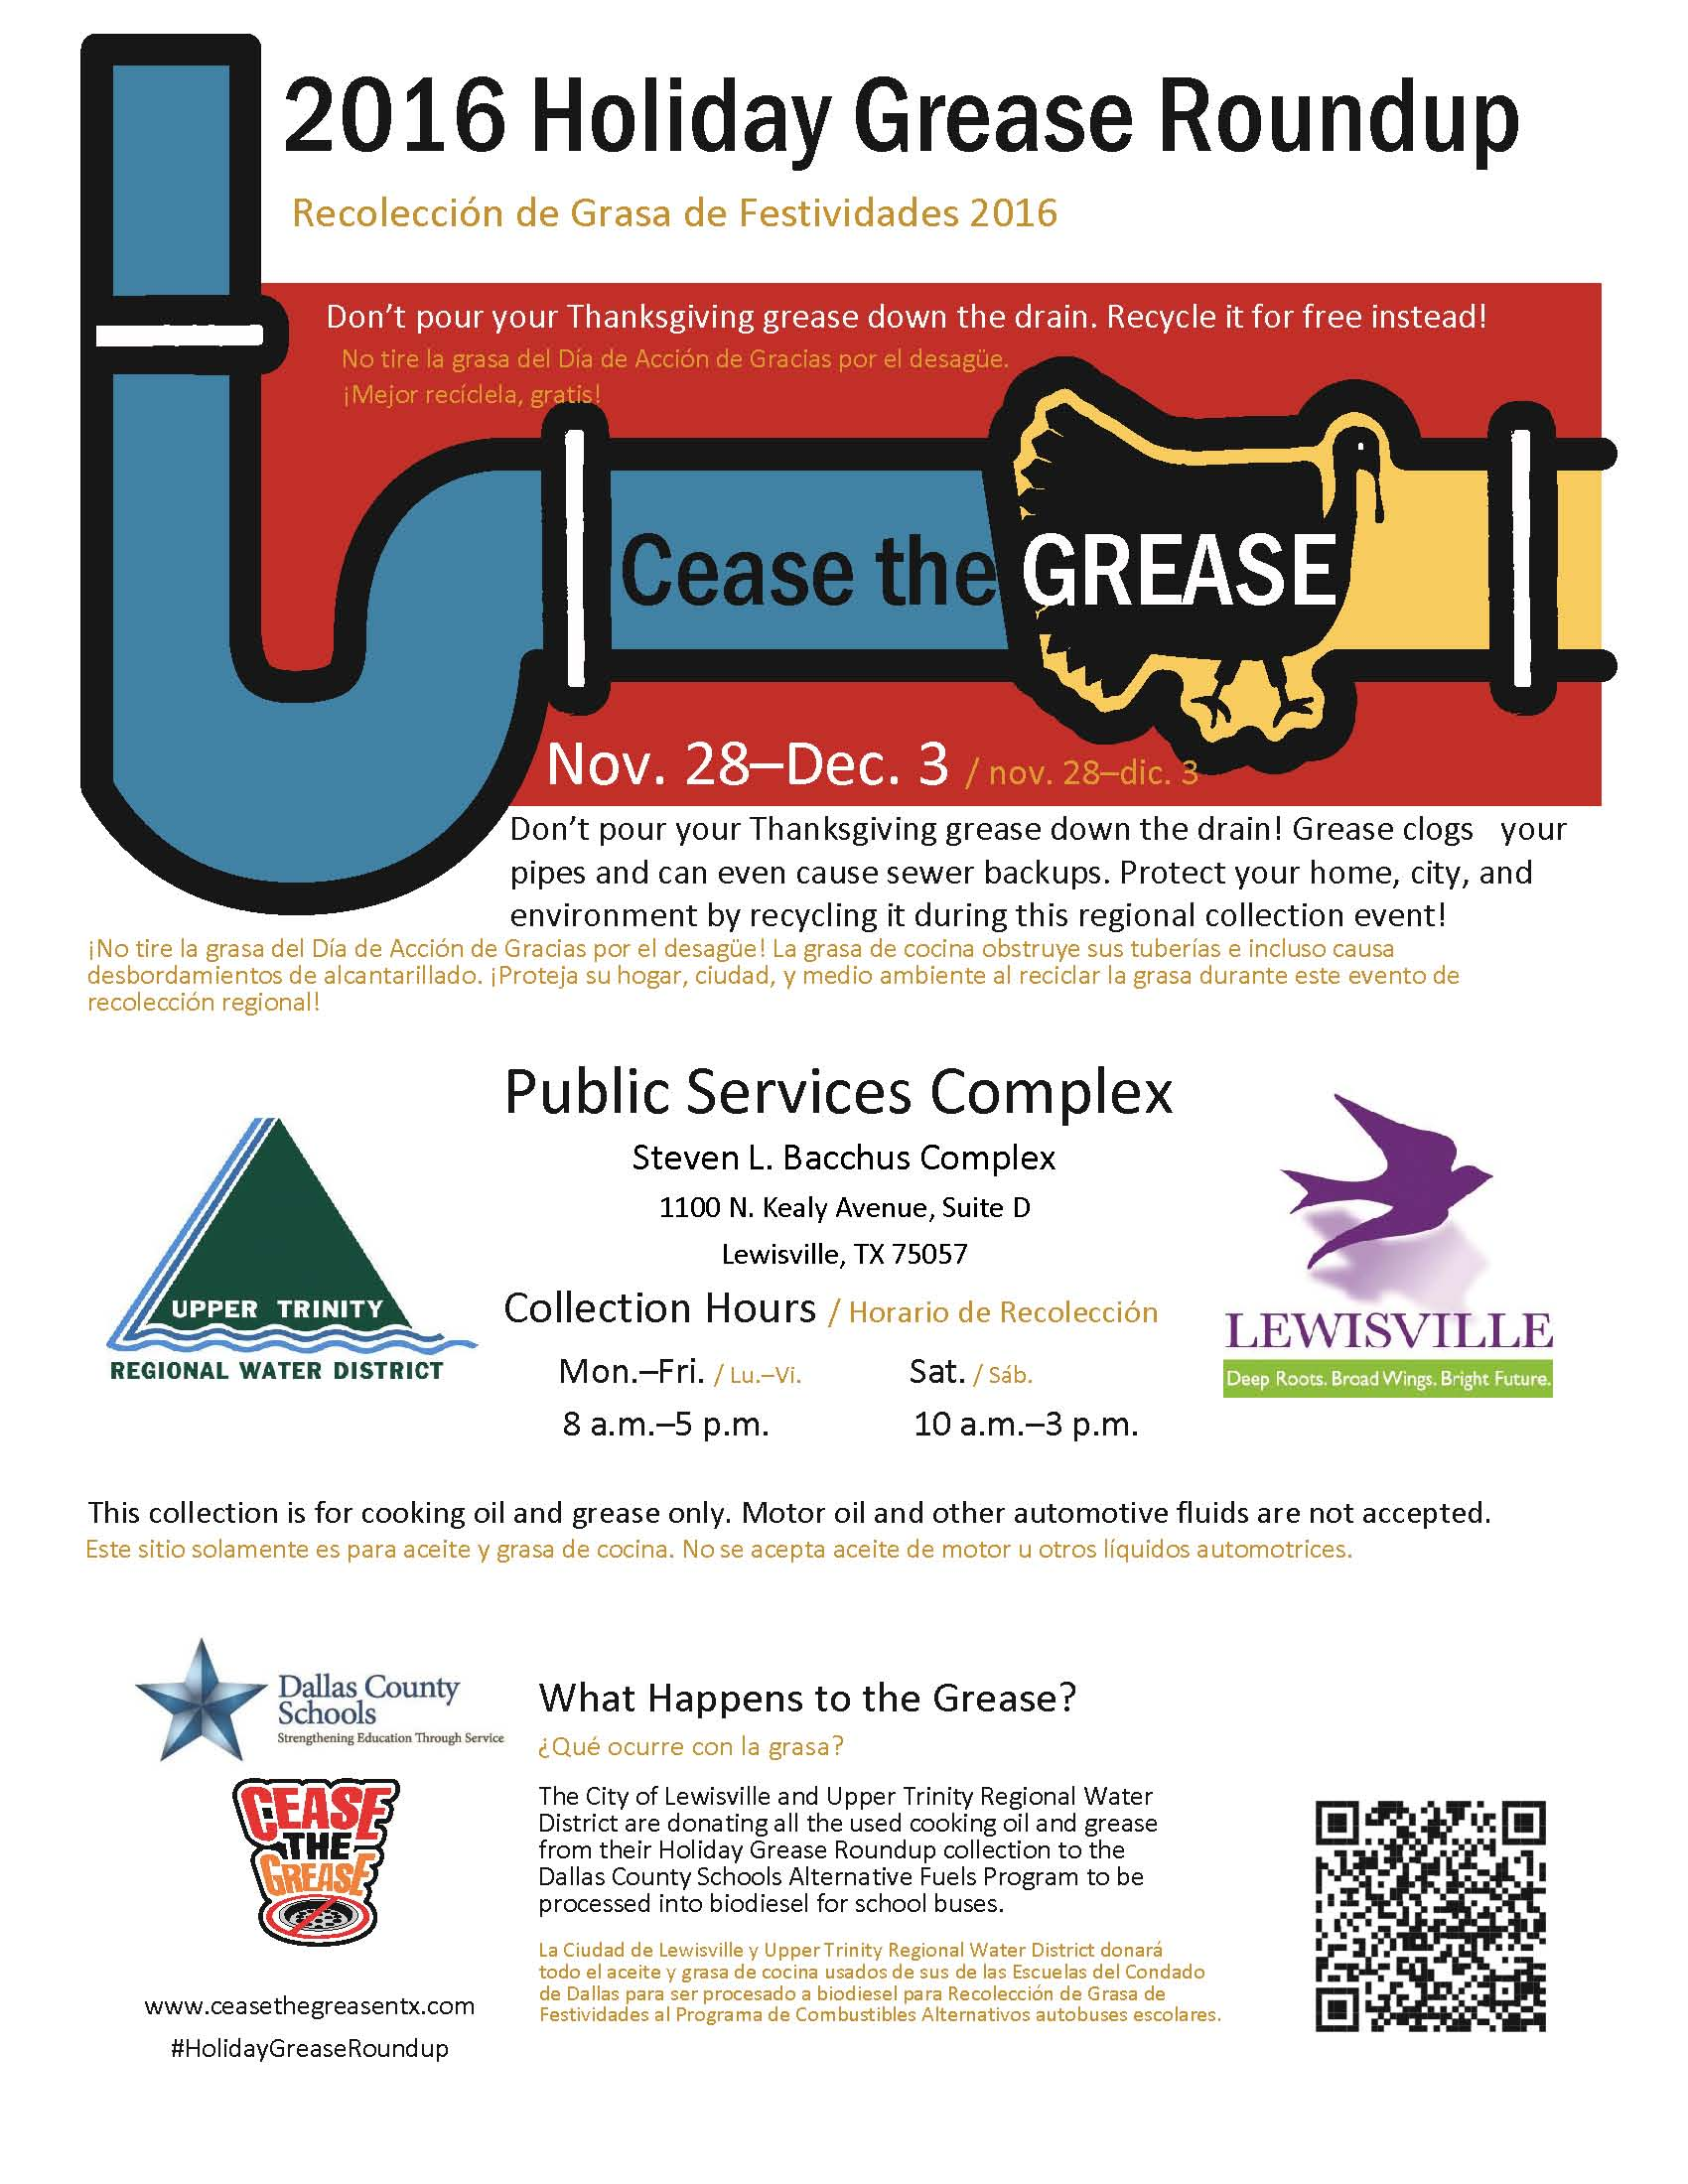 2016 Holiday Grease Round Up Flyer